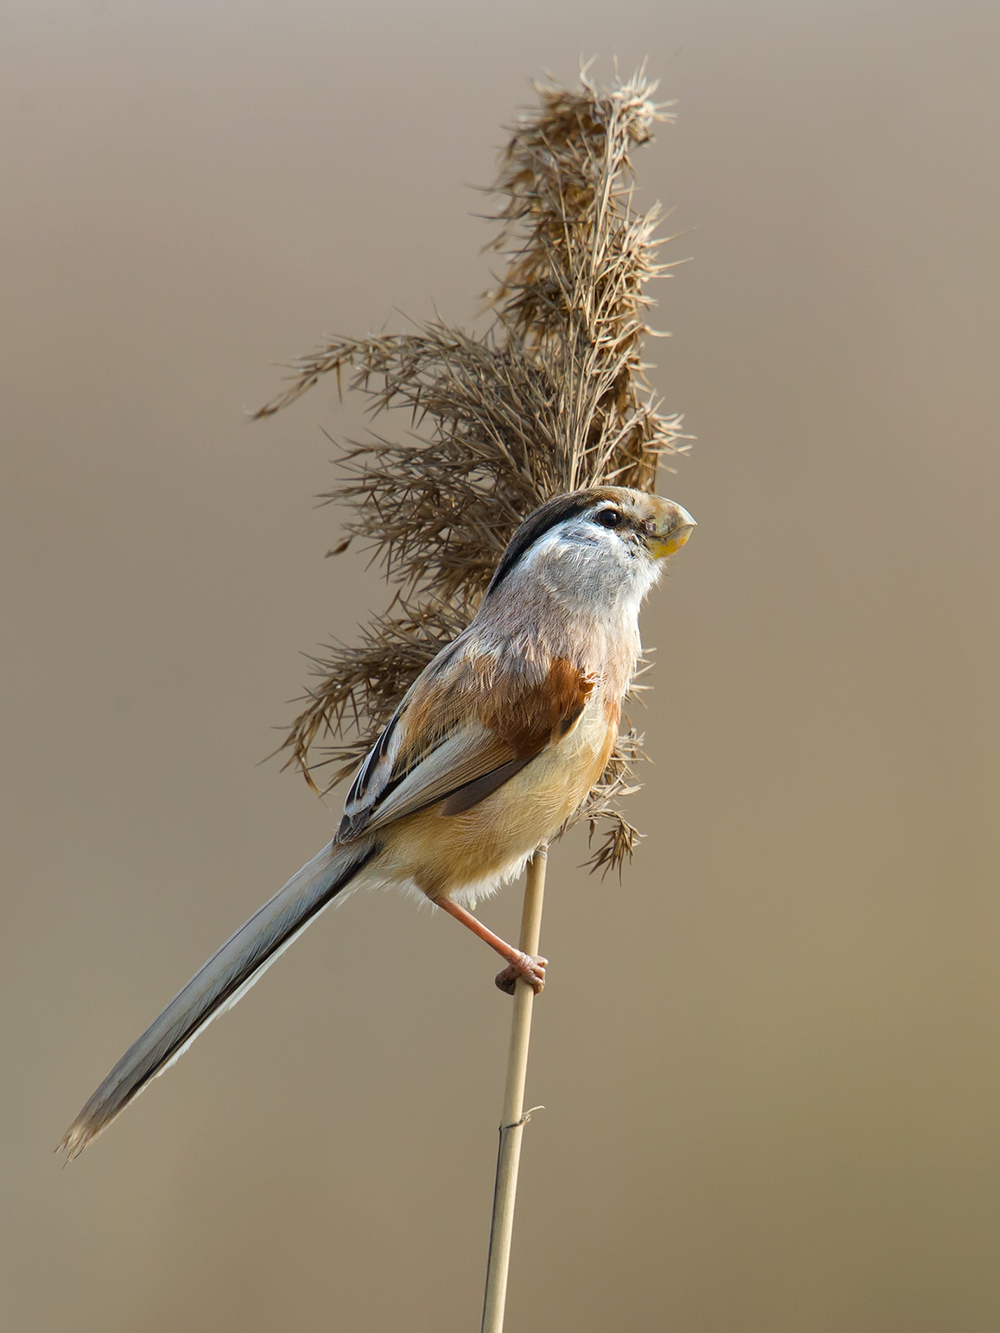 Reed Parrotbill is not a birder's bird but the people's bird. It is a species totally dependent on reeds, a plant that is part of the very fabric of Shanghai.